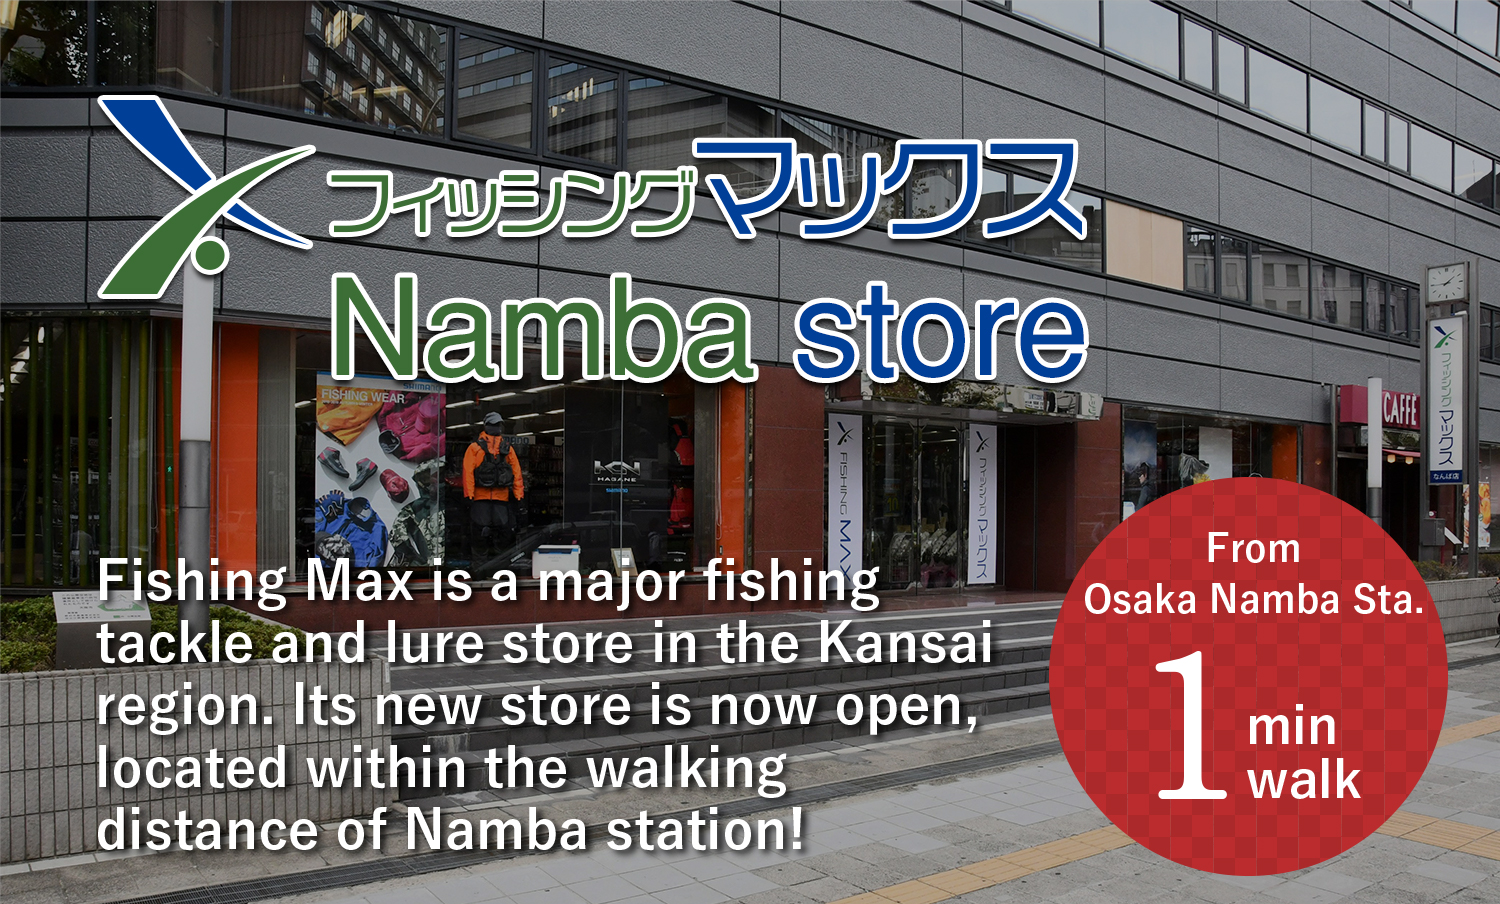 Fishing gear · Outdoor goods Large specialty store「FISHING MAX」Namba store